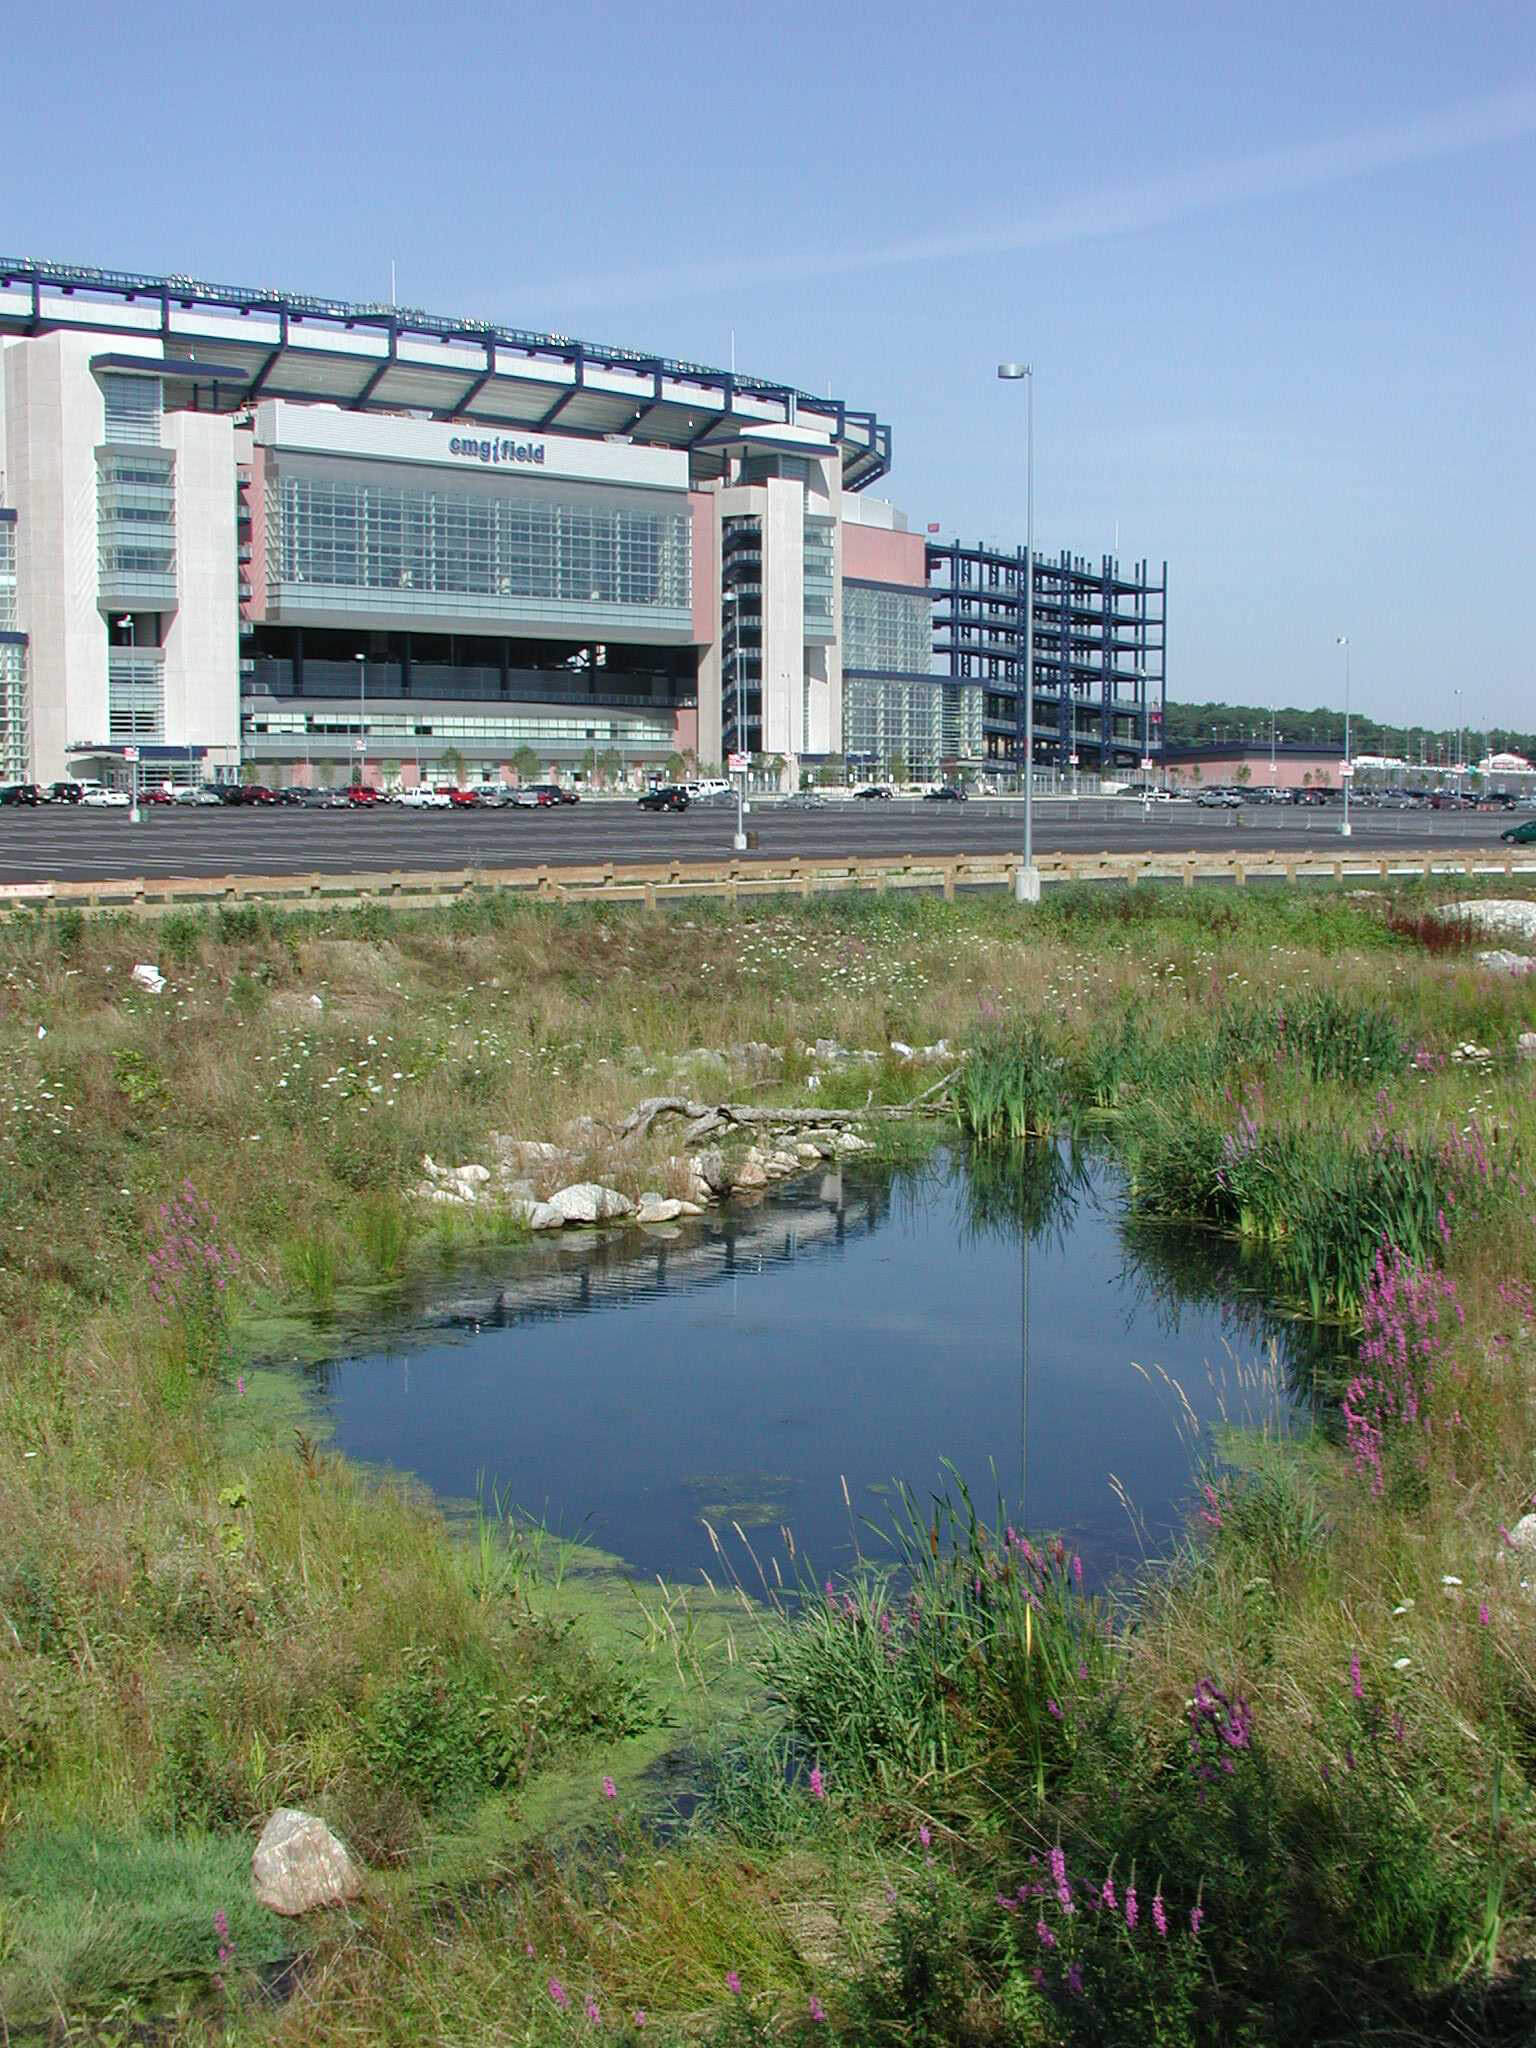 At the New England Patriots Gillette Stadium, Tom served as Lead Designer for daylighting and restoration of a one mile long section of the Neponset River (formerly confined in clogged underground culvert pipes).  Riparian edge also softened stadium's extensive parking areas.